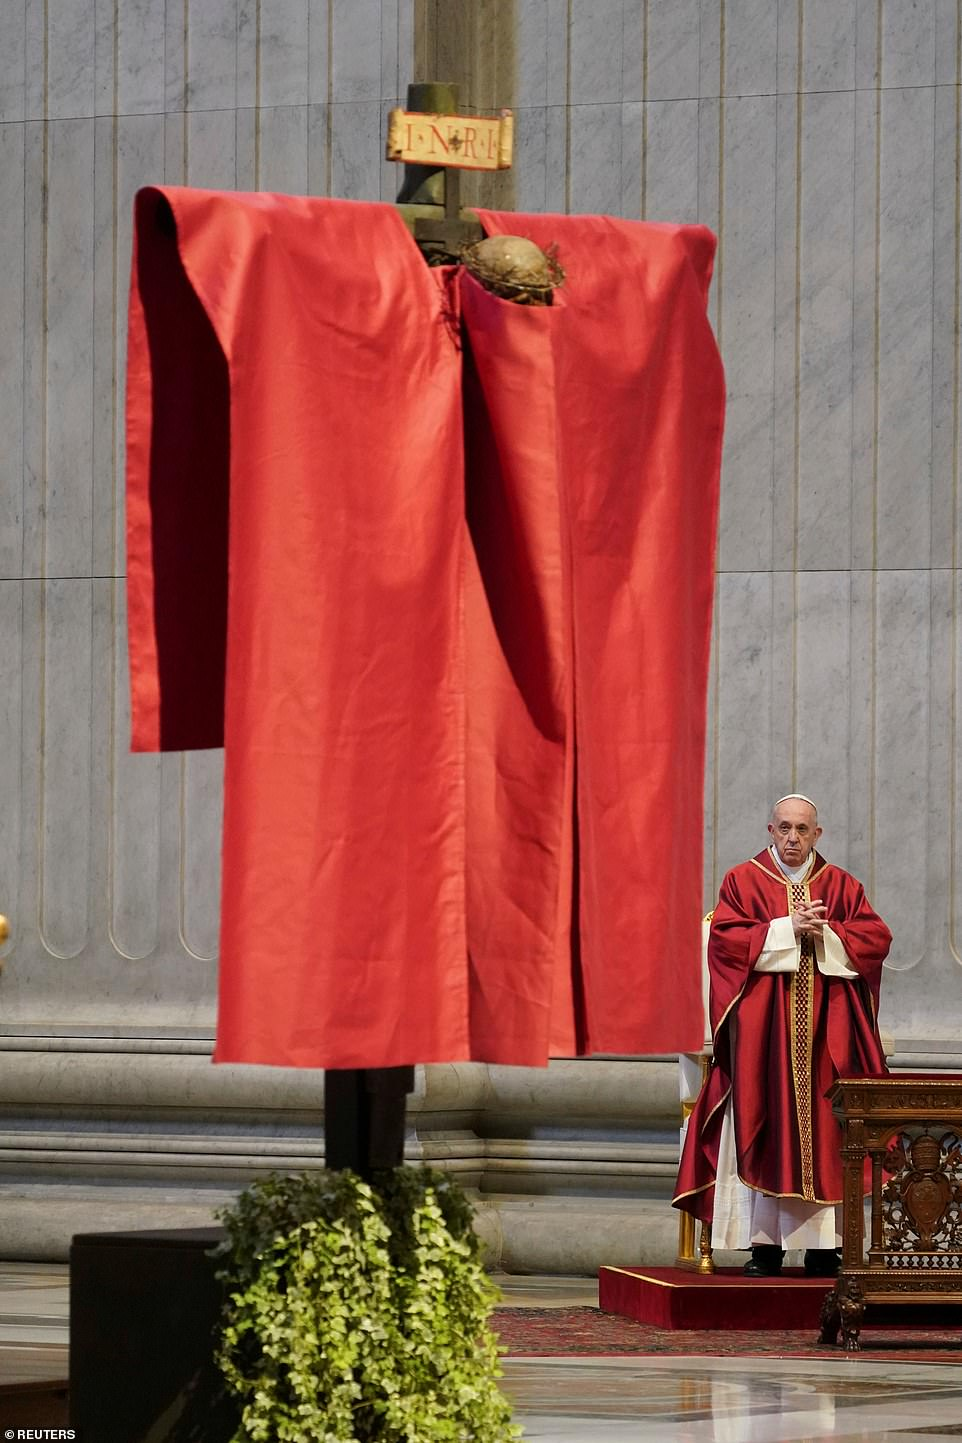 The head of the Catholic Church and sovereign of the Vatican City State led the Good Friday Passion of the Lord with no public participation as millions of Italians stay at home over the weekend